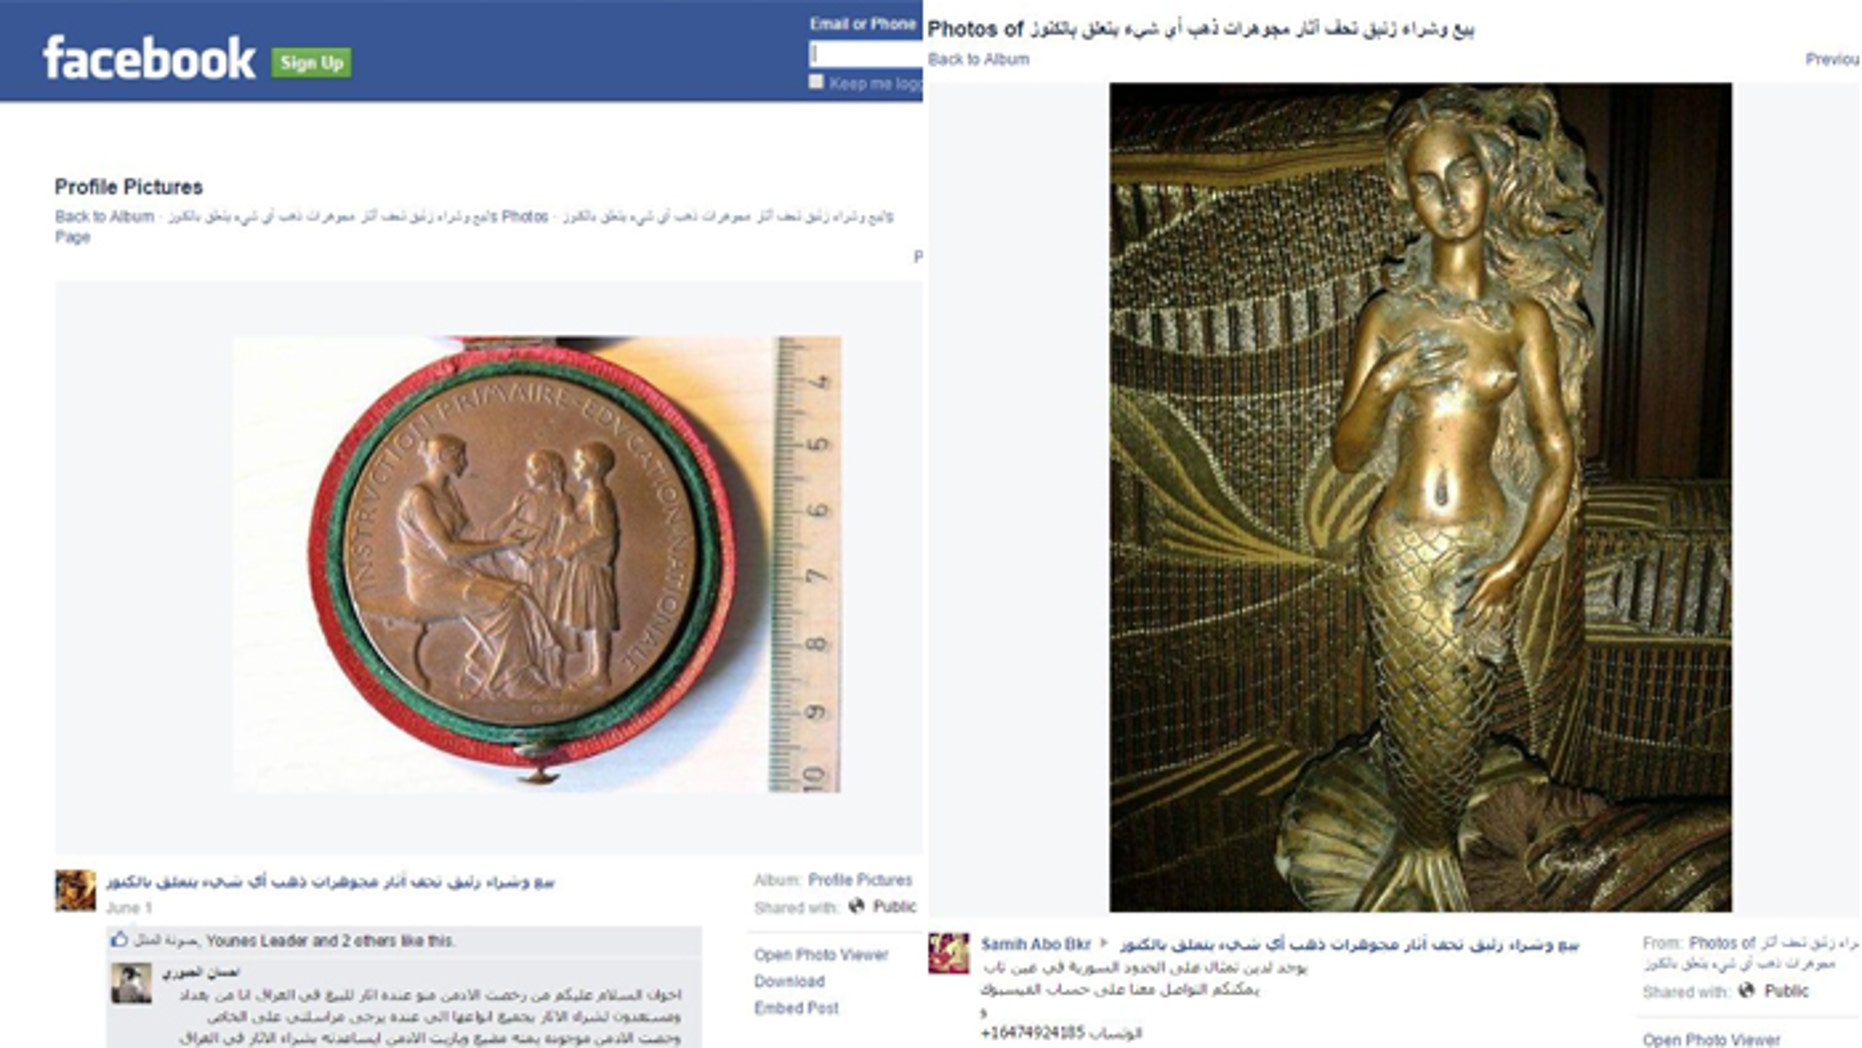 These items, believed to have been stolen by ISIS, were offered for sale on Facebook.